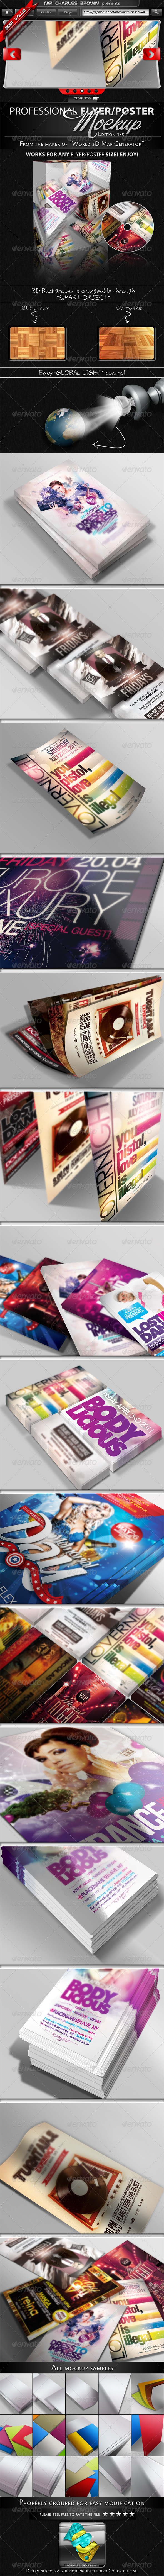 GraphicRiver Flyer & Poster Mockup Bundle 1-3 2510653